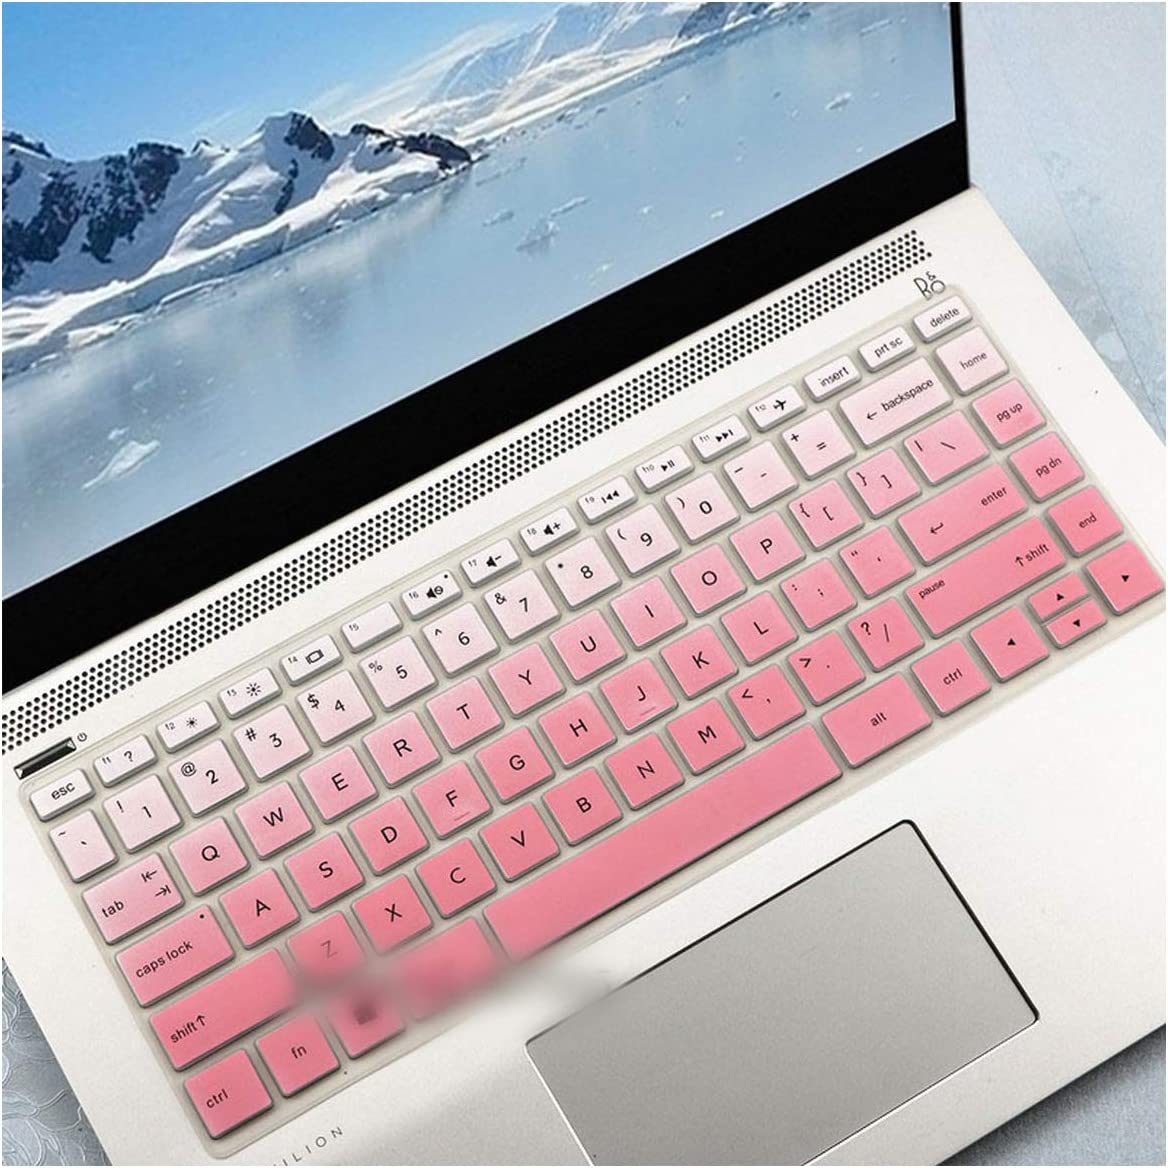 14 Inch Laptop Keyboard Cover Protector Skin for Hp Notebook 14 Cf0014Dx 14 Cf0018Ca 14 Cf0005Ne 14 Cf0052Od 14 Cf0000Ne-In Keyboard Covers from Computer /& Office,Bear